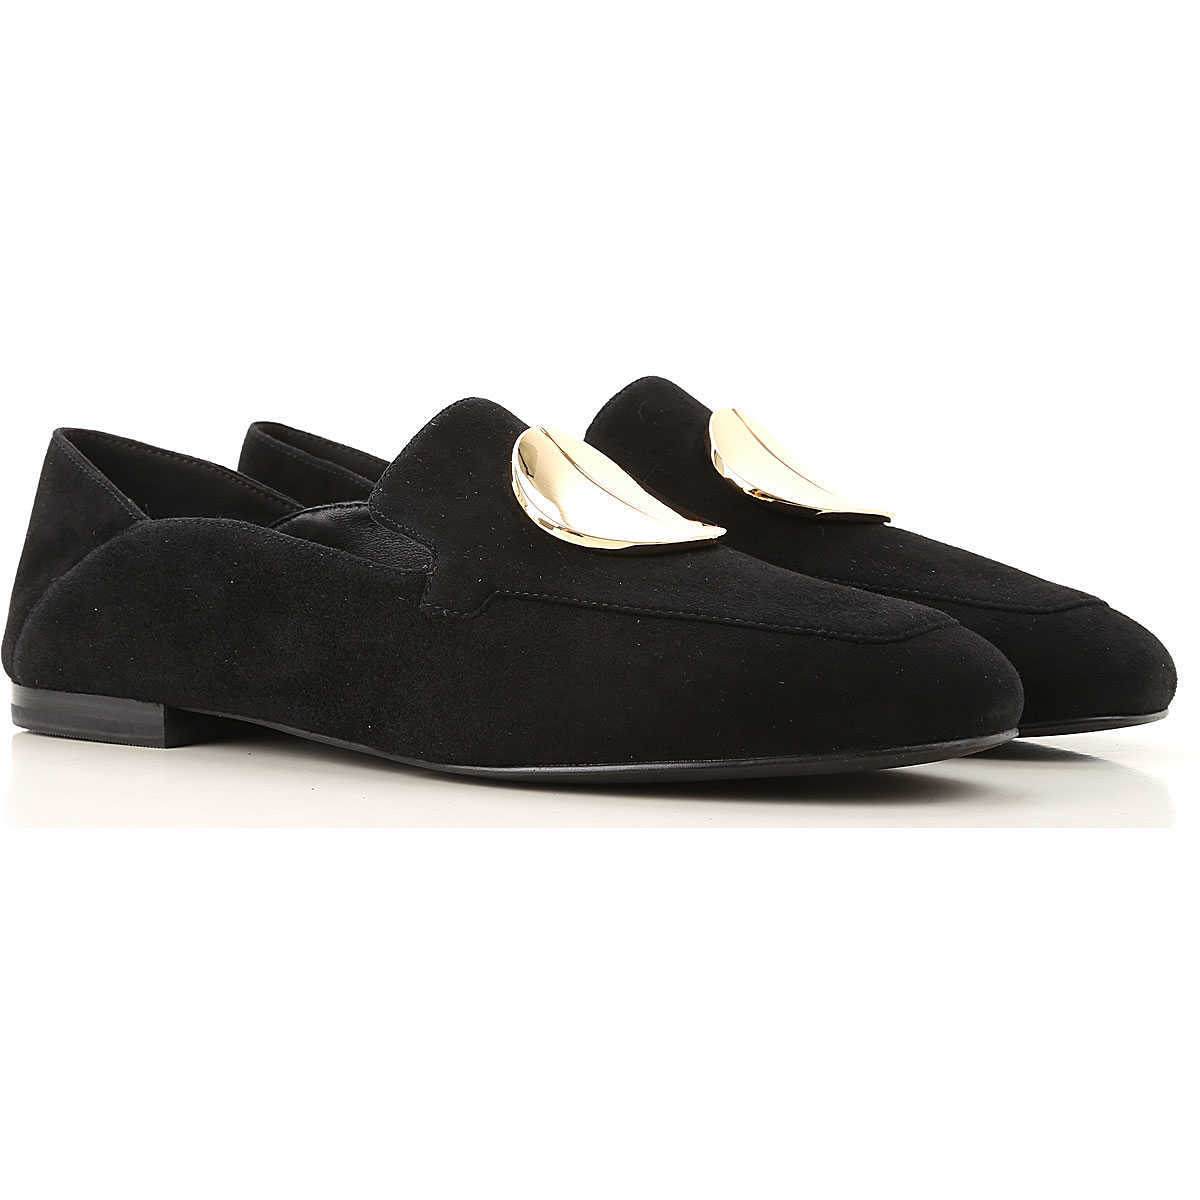 What For Loafers for Women Black Canada - GOOFASH - Womens FLAT SHOES